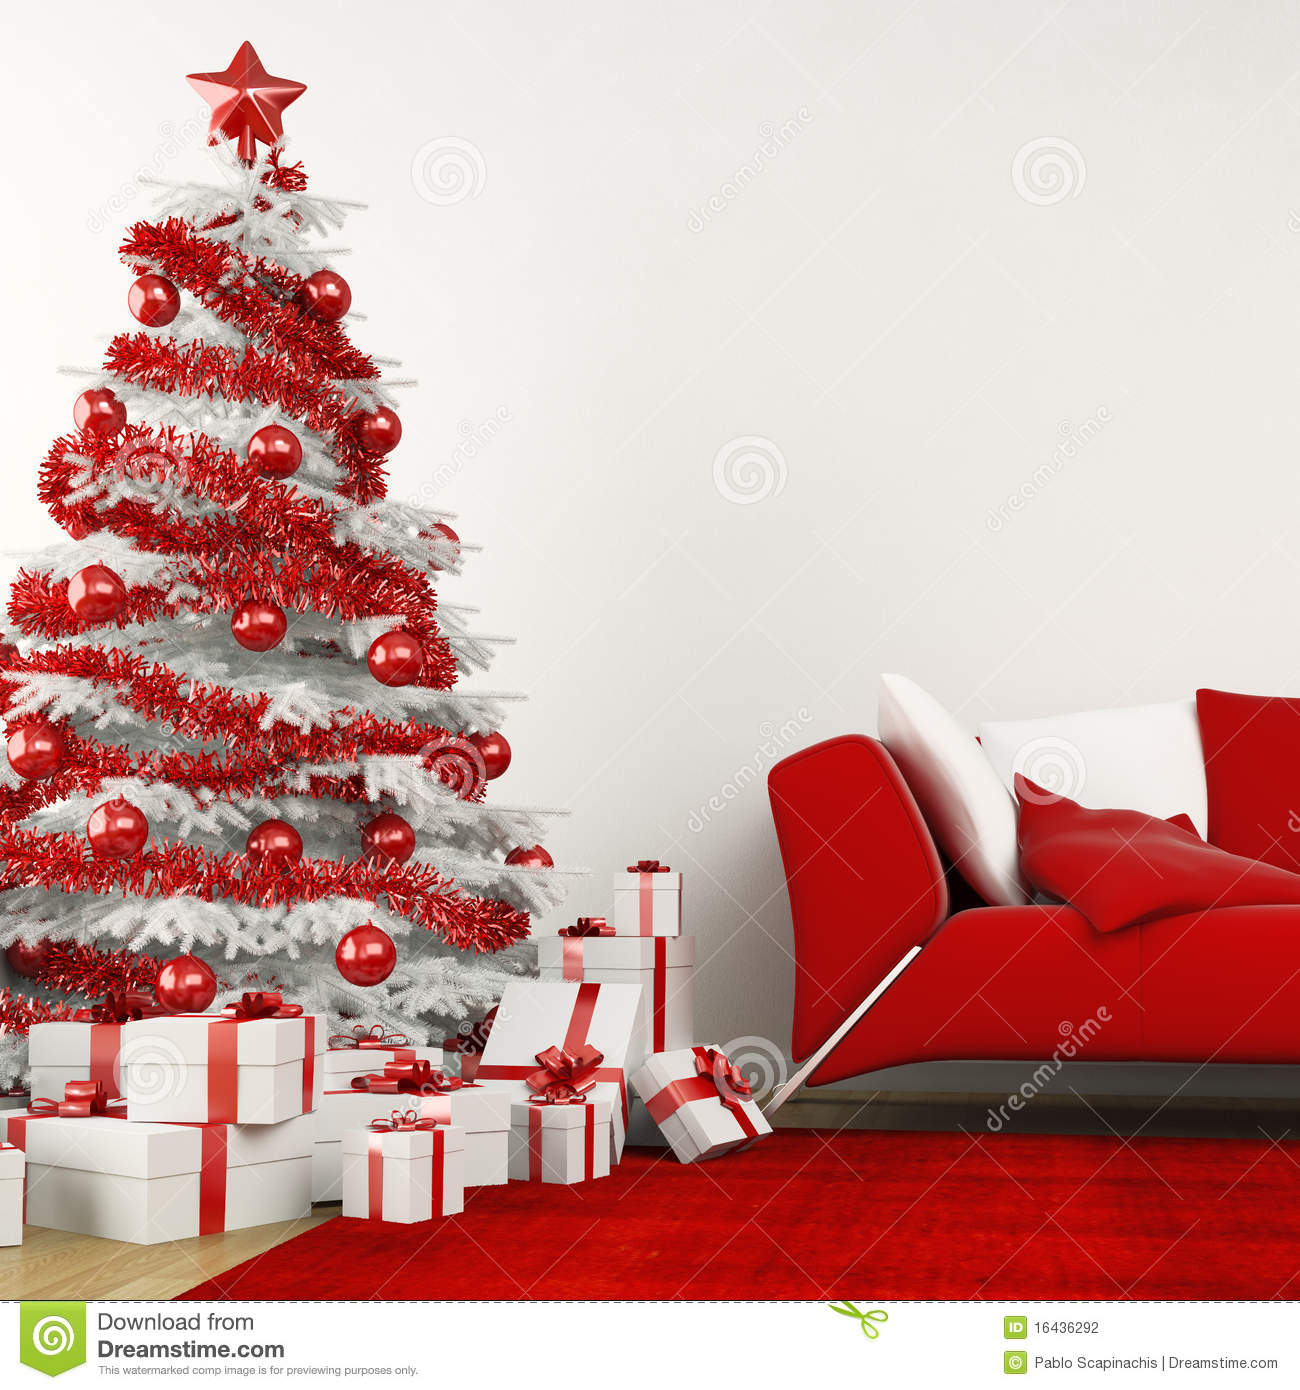 White and red christmas tree stock illustration Red white christmas tree